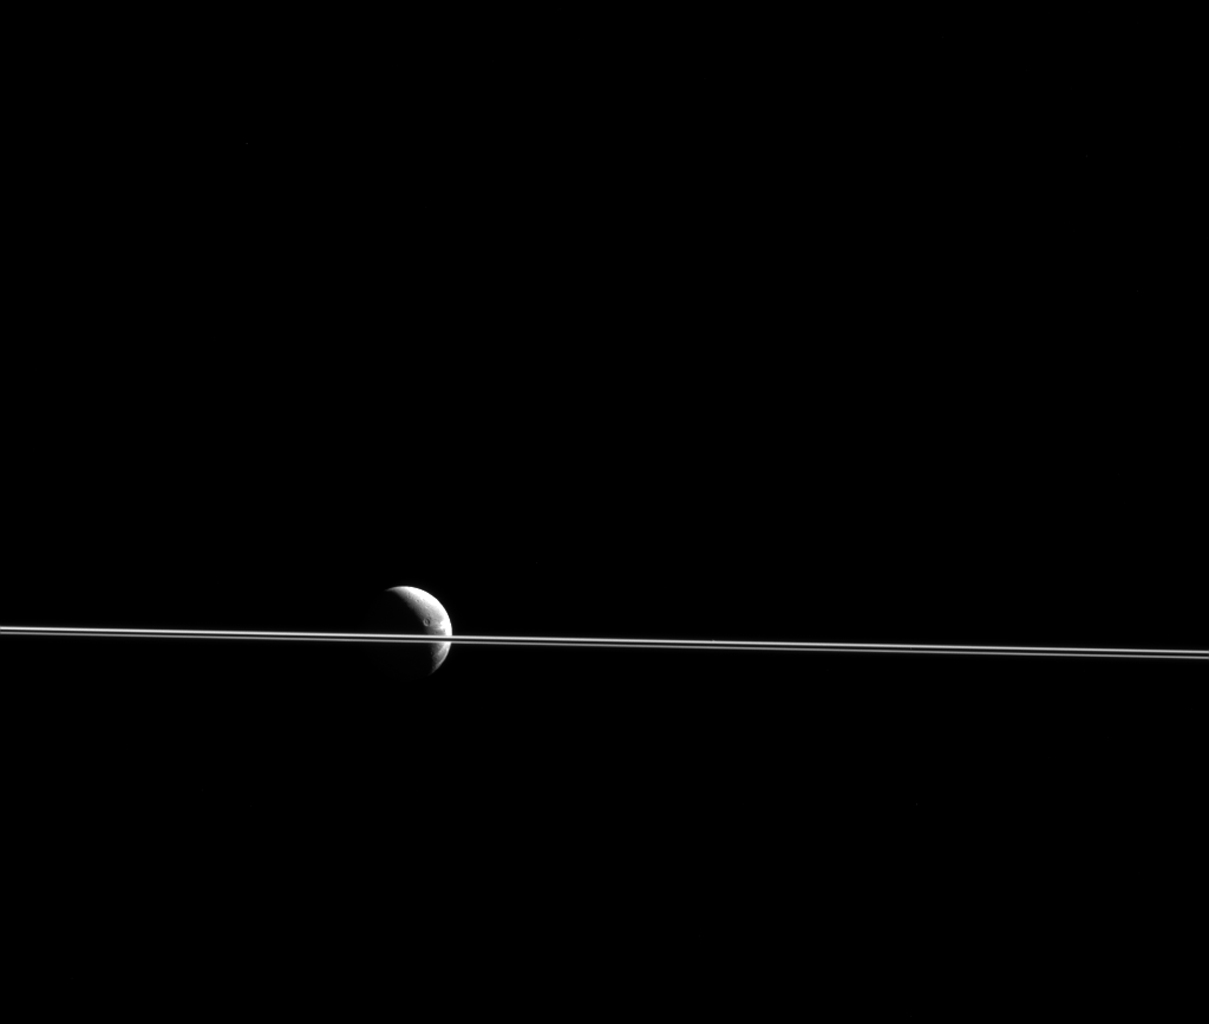 Dione appears cut in two by Saturn's razor-thin rings, seen nearly edge-on in a view from NASA's Cassini spacecraft.